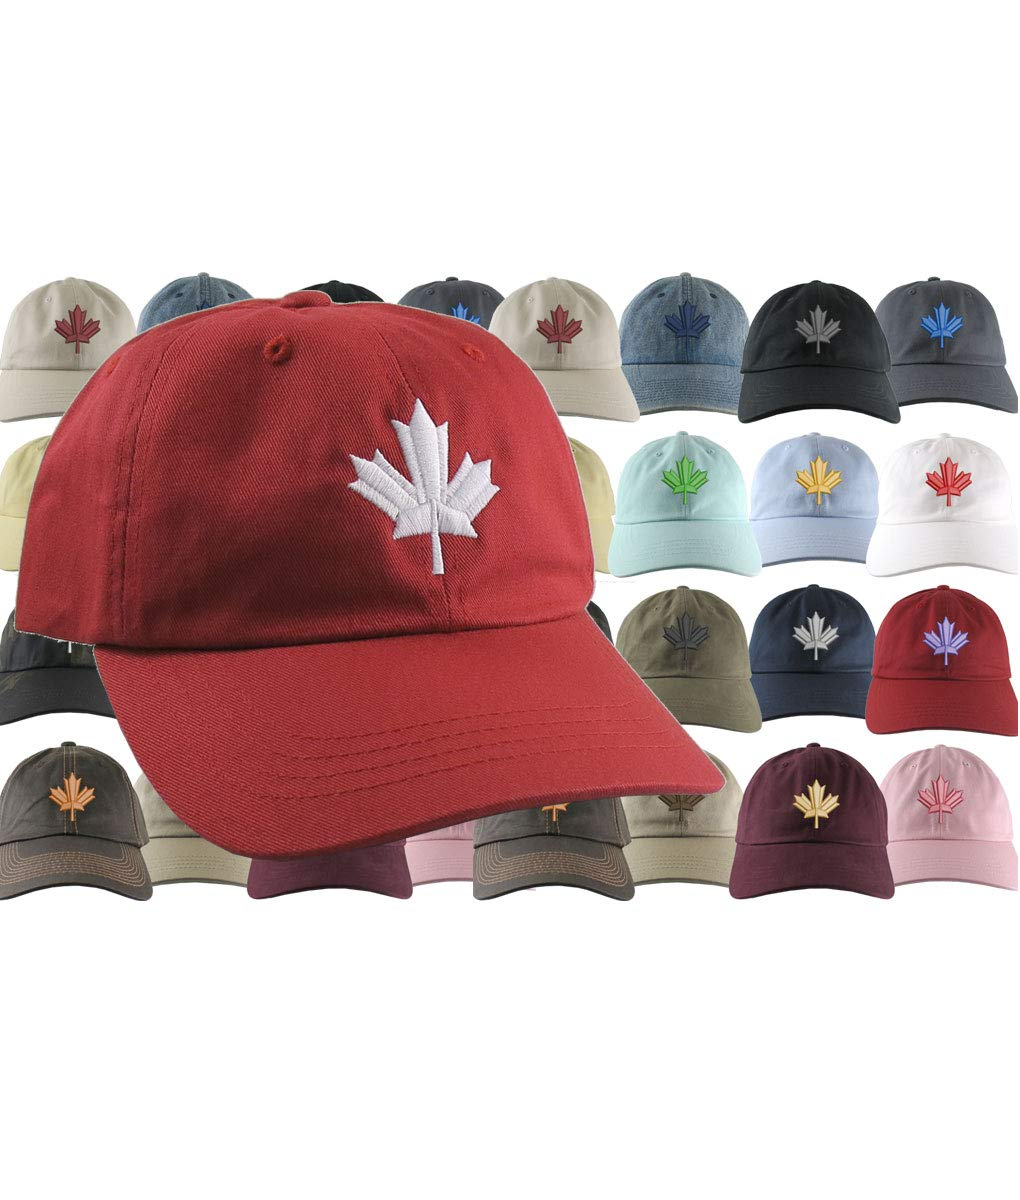 feb5cac8 Custom Canadian Maple Leaf Your Colour Choice Embroidery on Your Selection  of an Adjustable Unstructured Baseball Cap Dad Hat Style Canada + Options:  ...